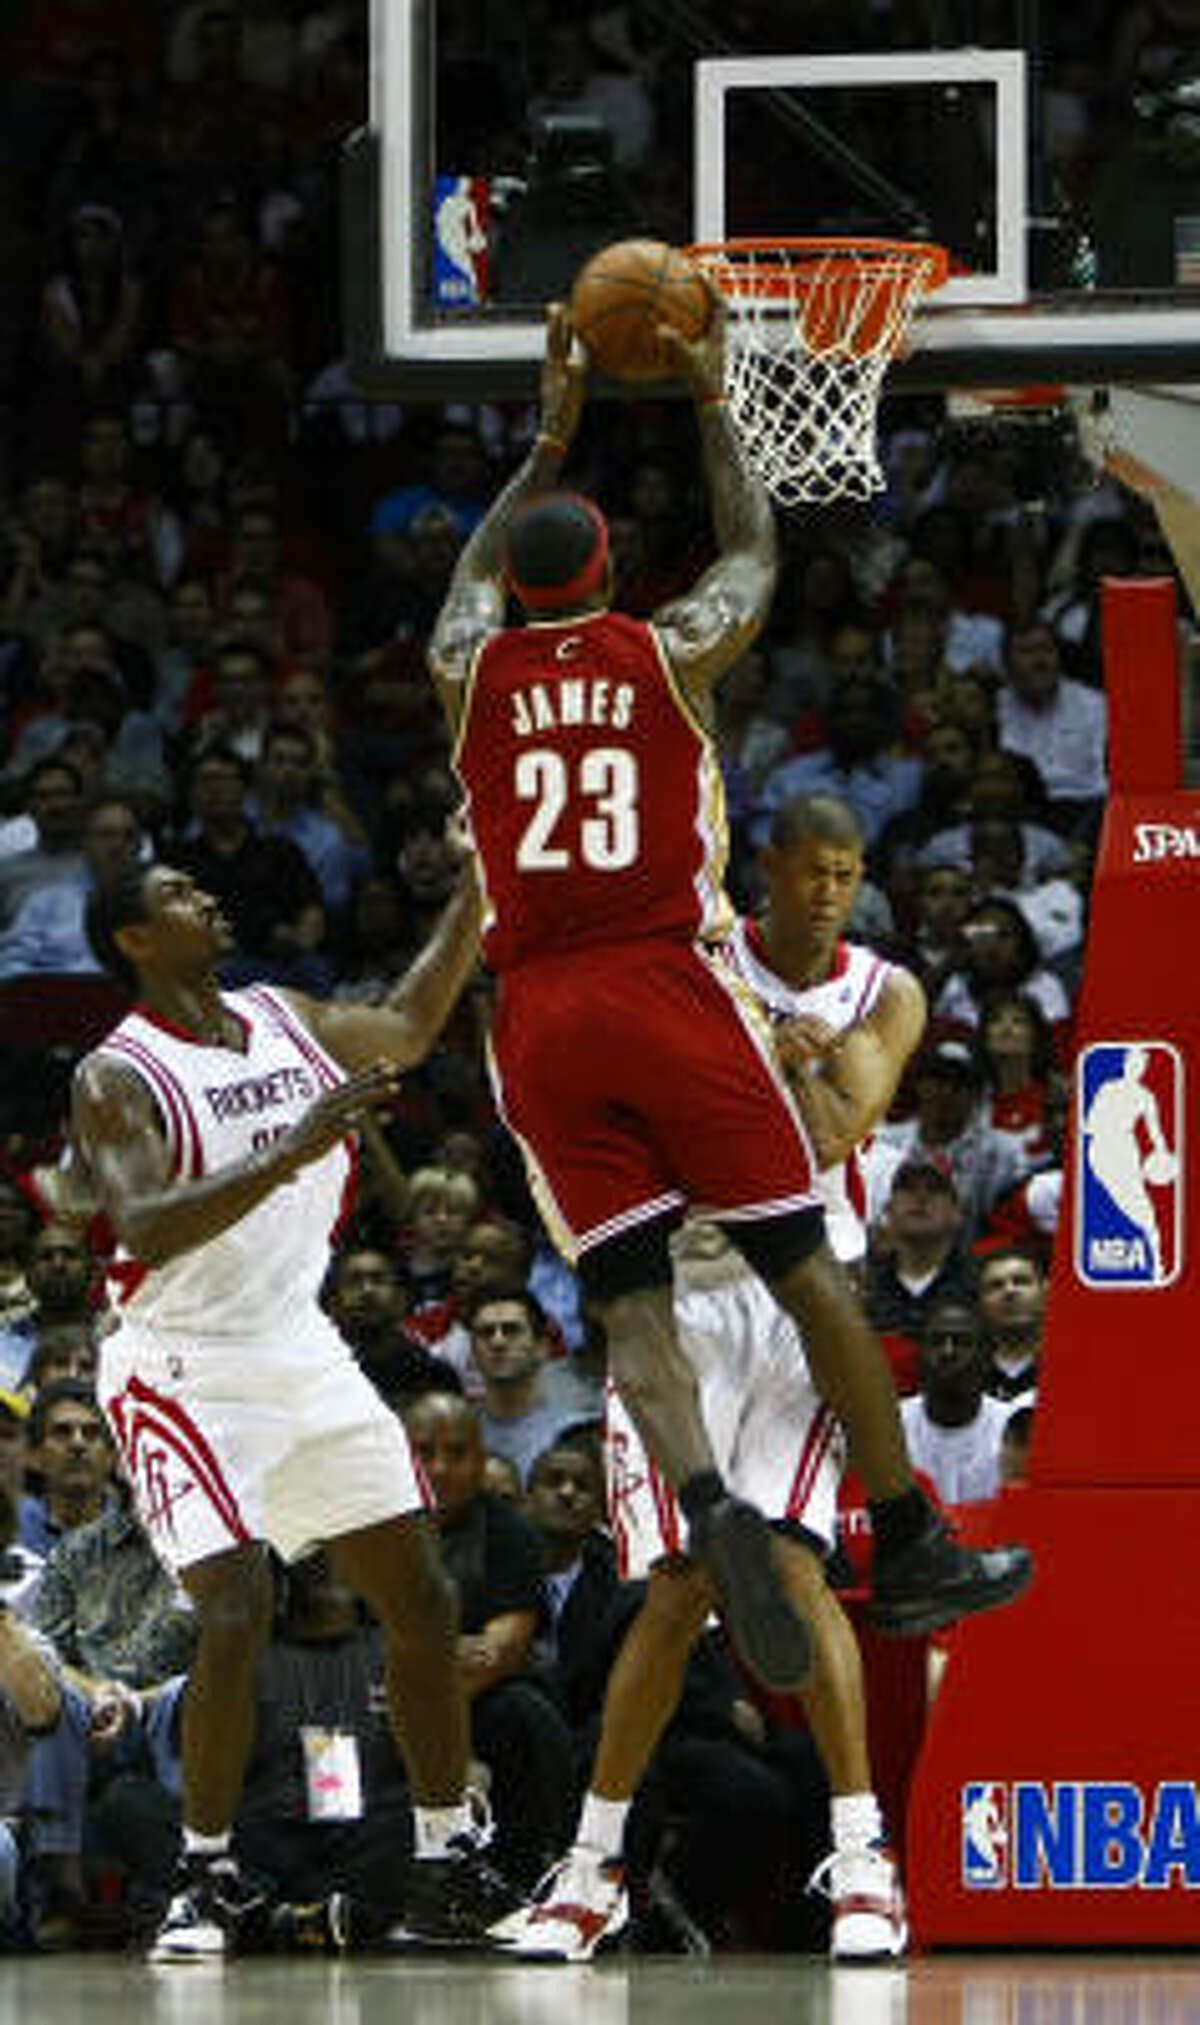 Shane Battier, back, stays planted to draw an offensive foul on LeBron James (23) during the first quarter.